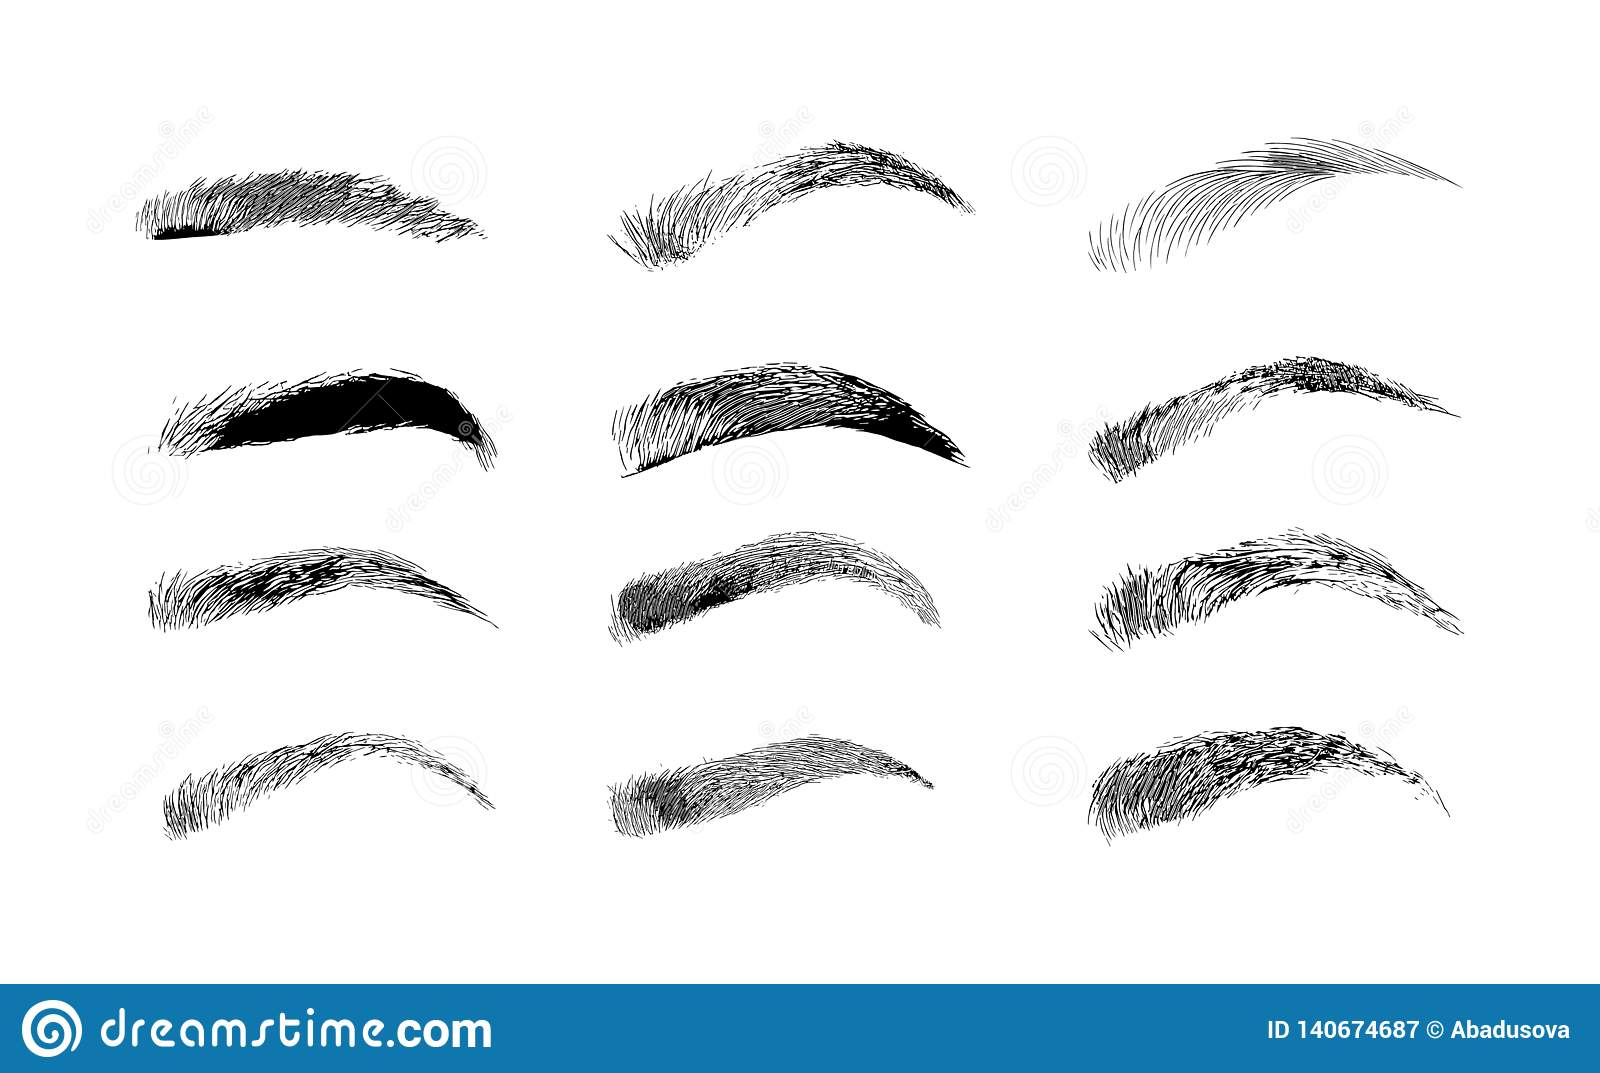 Eyebrow shapes various types of eyebrows classic type and